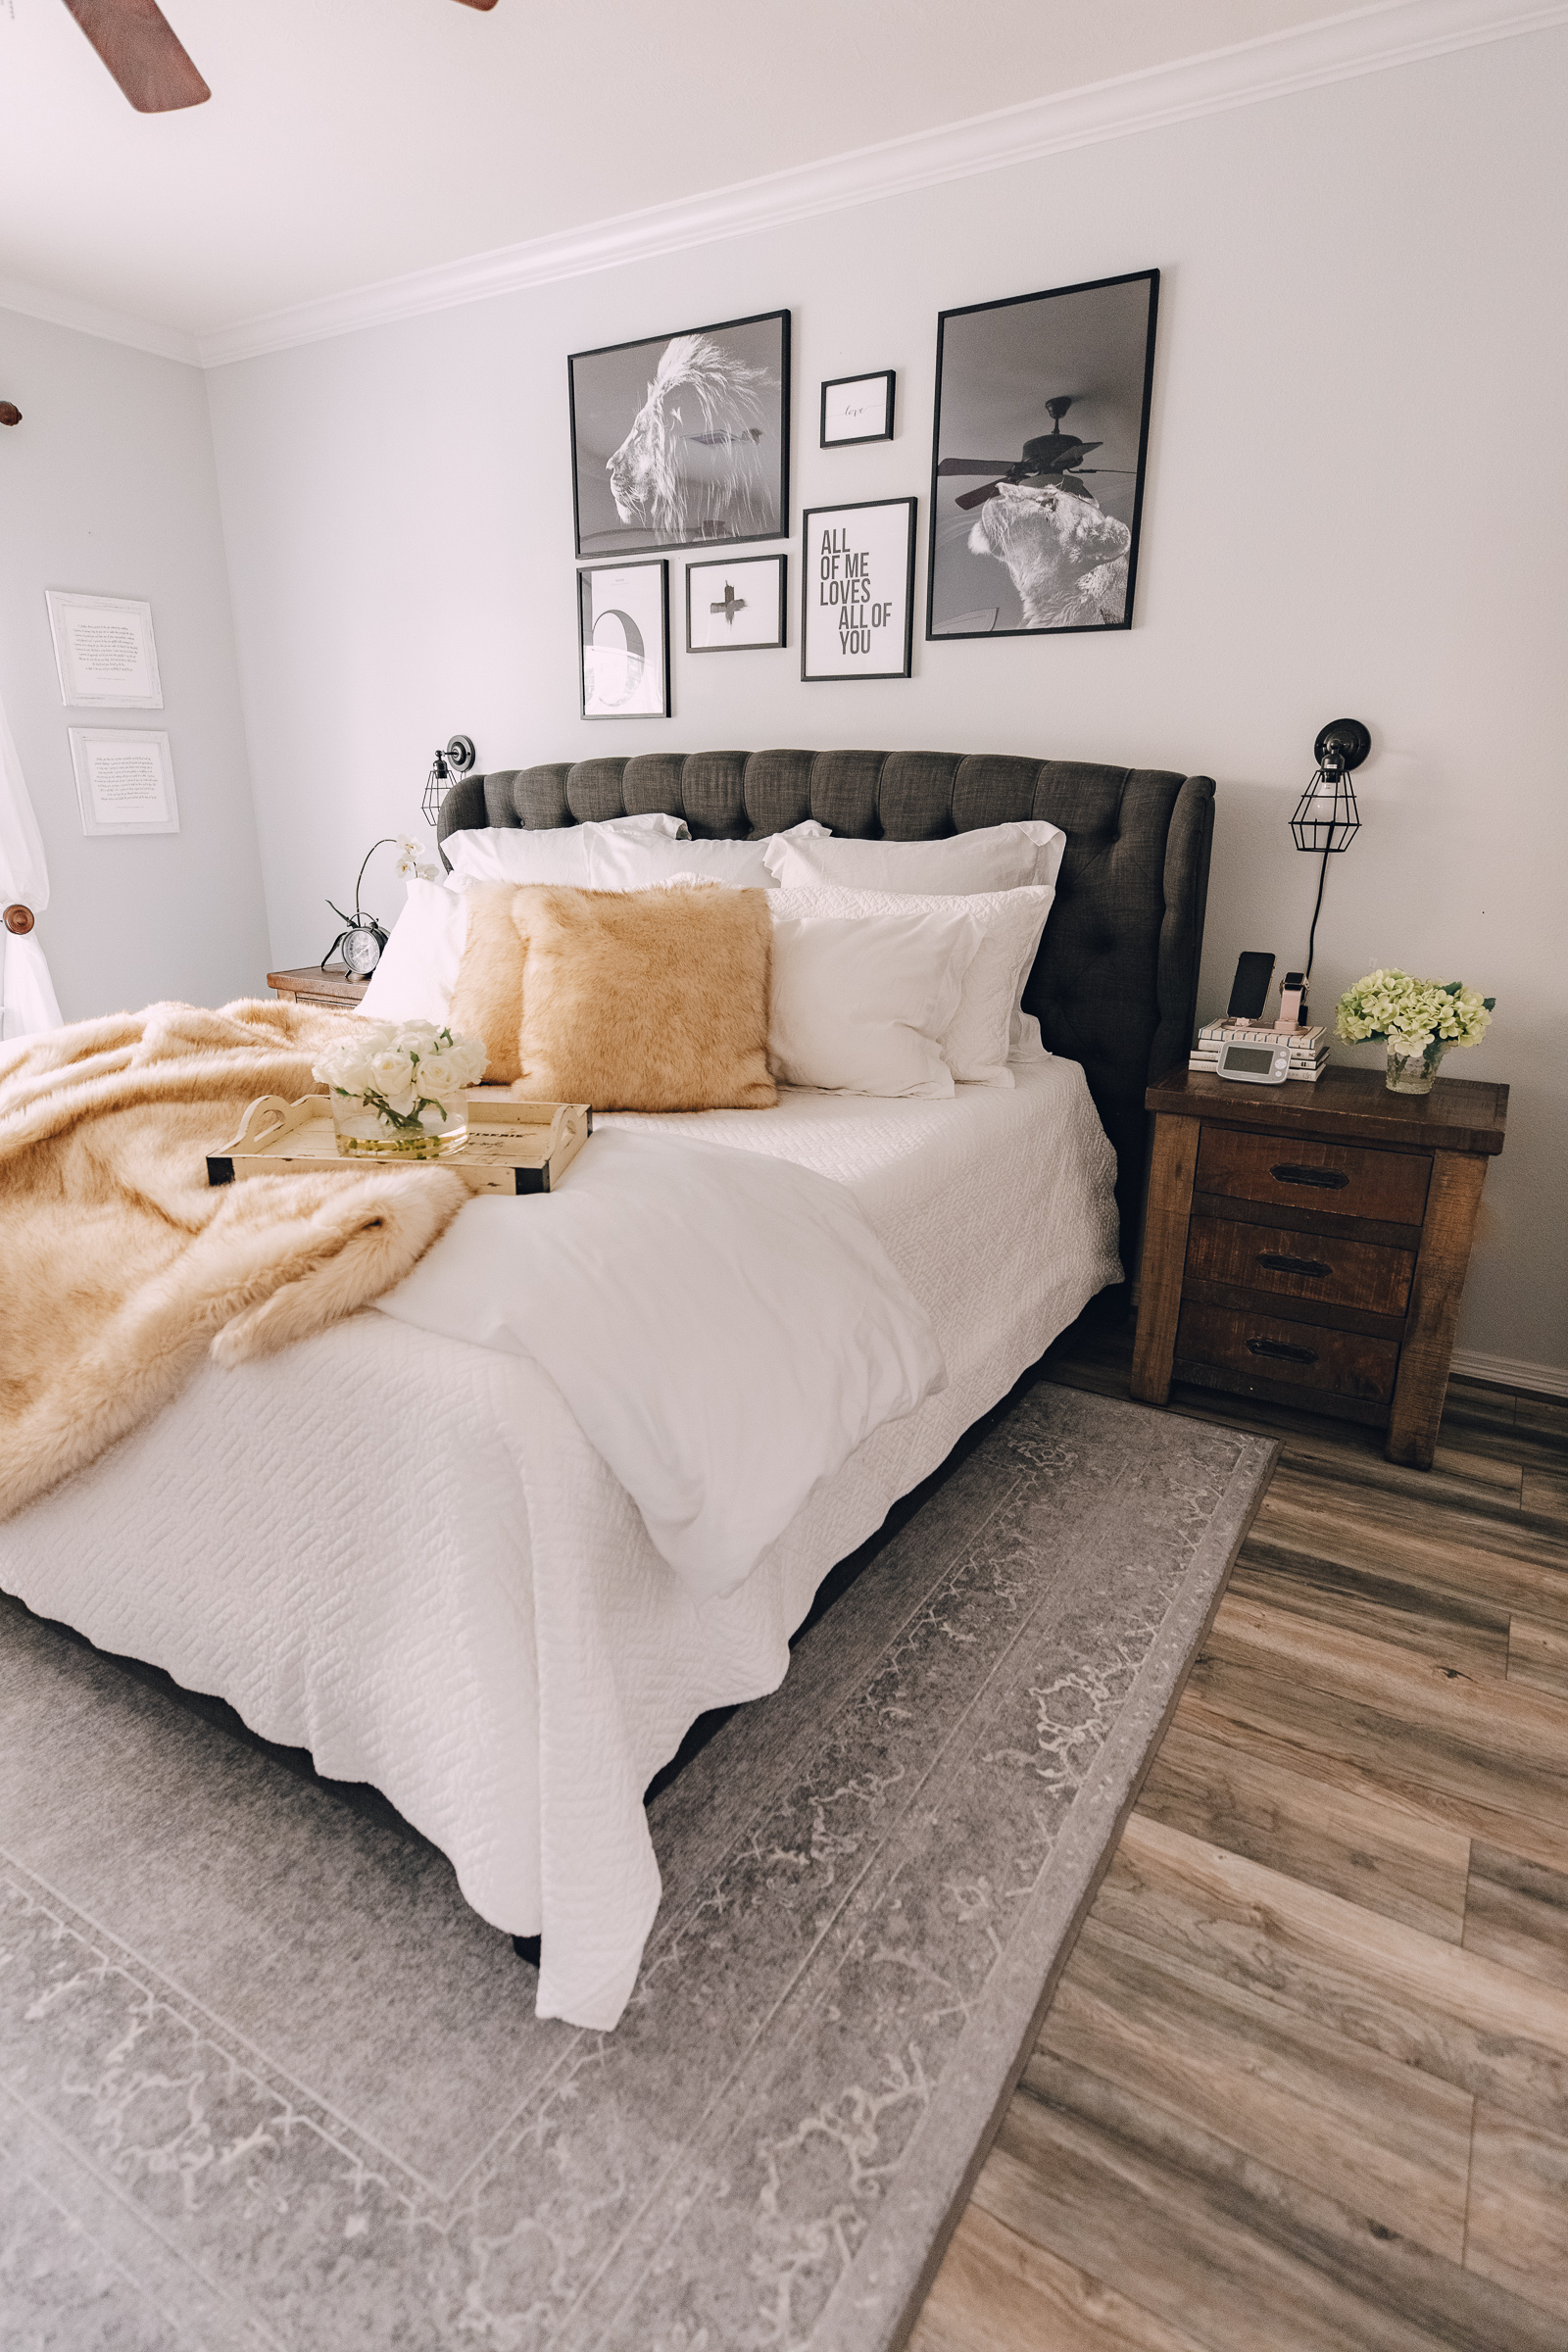 lifestyle blogger Elly Brown shares over the bed wall art in her master bedroom